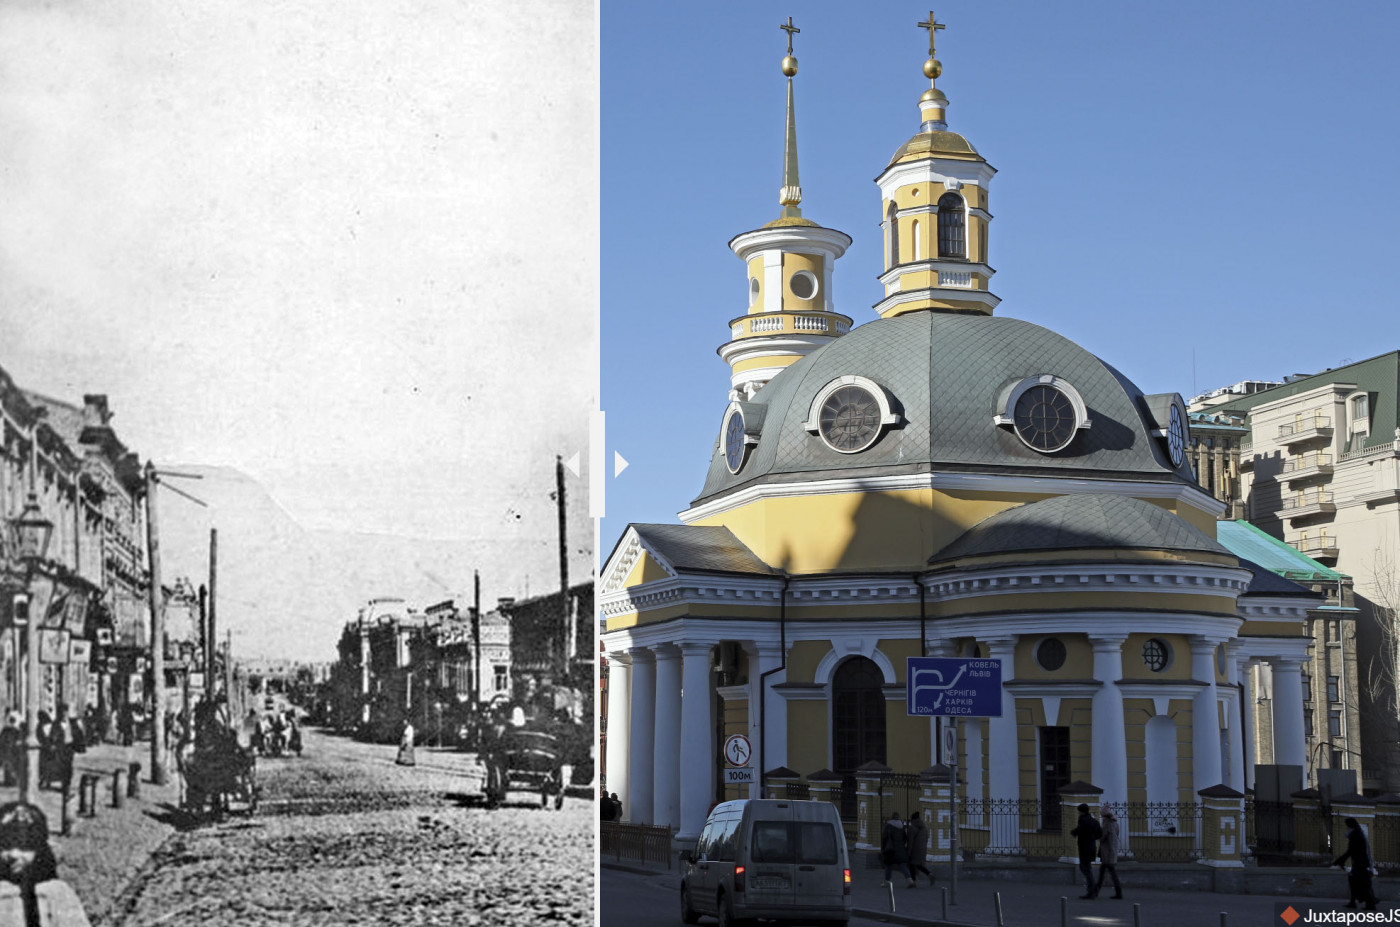 View of Sahaydachnoho street from Poshtova Ploshcha with the landmark Nativity church as photographed in the beginning of the 20th and 21st centuries.